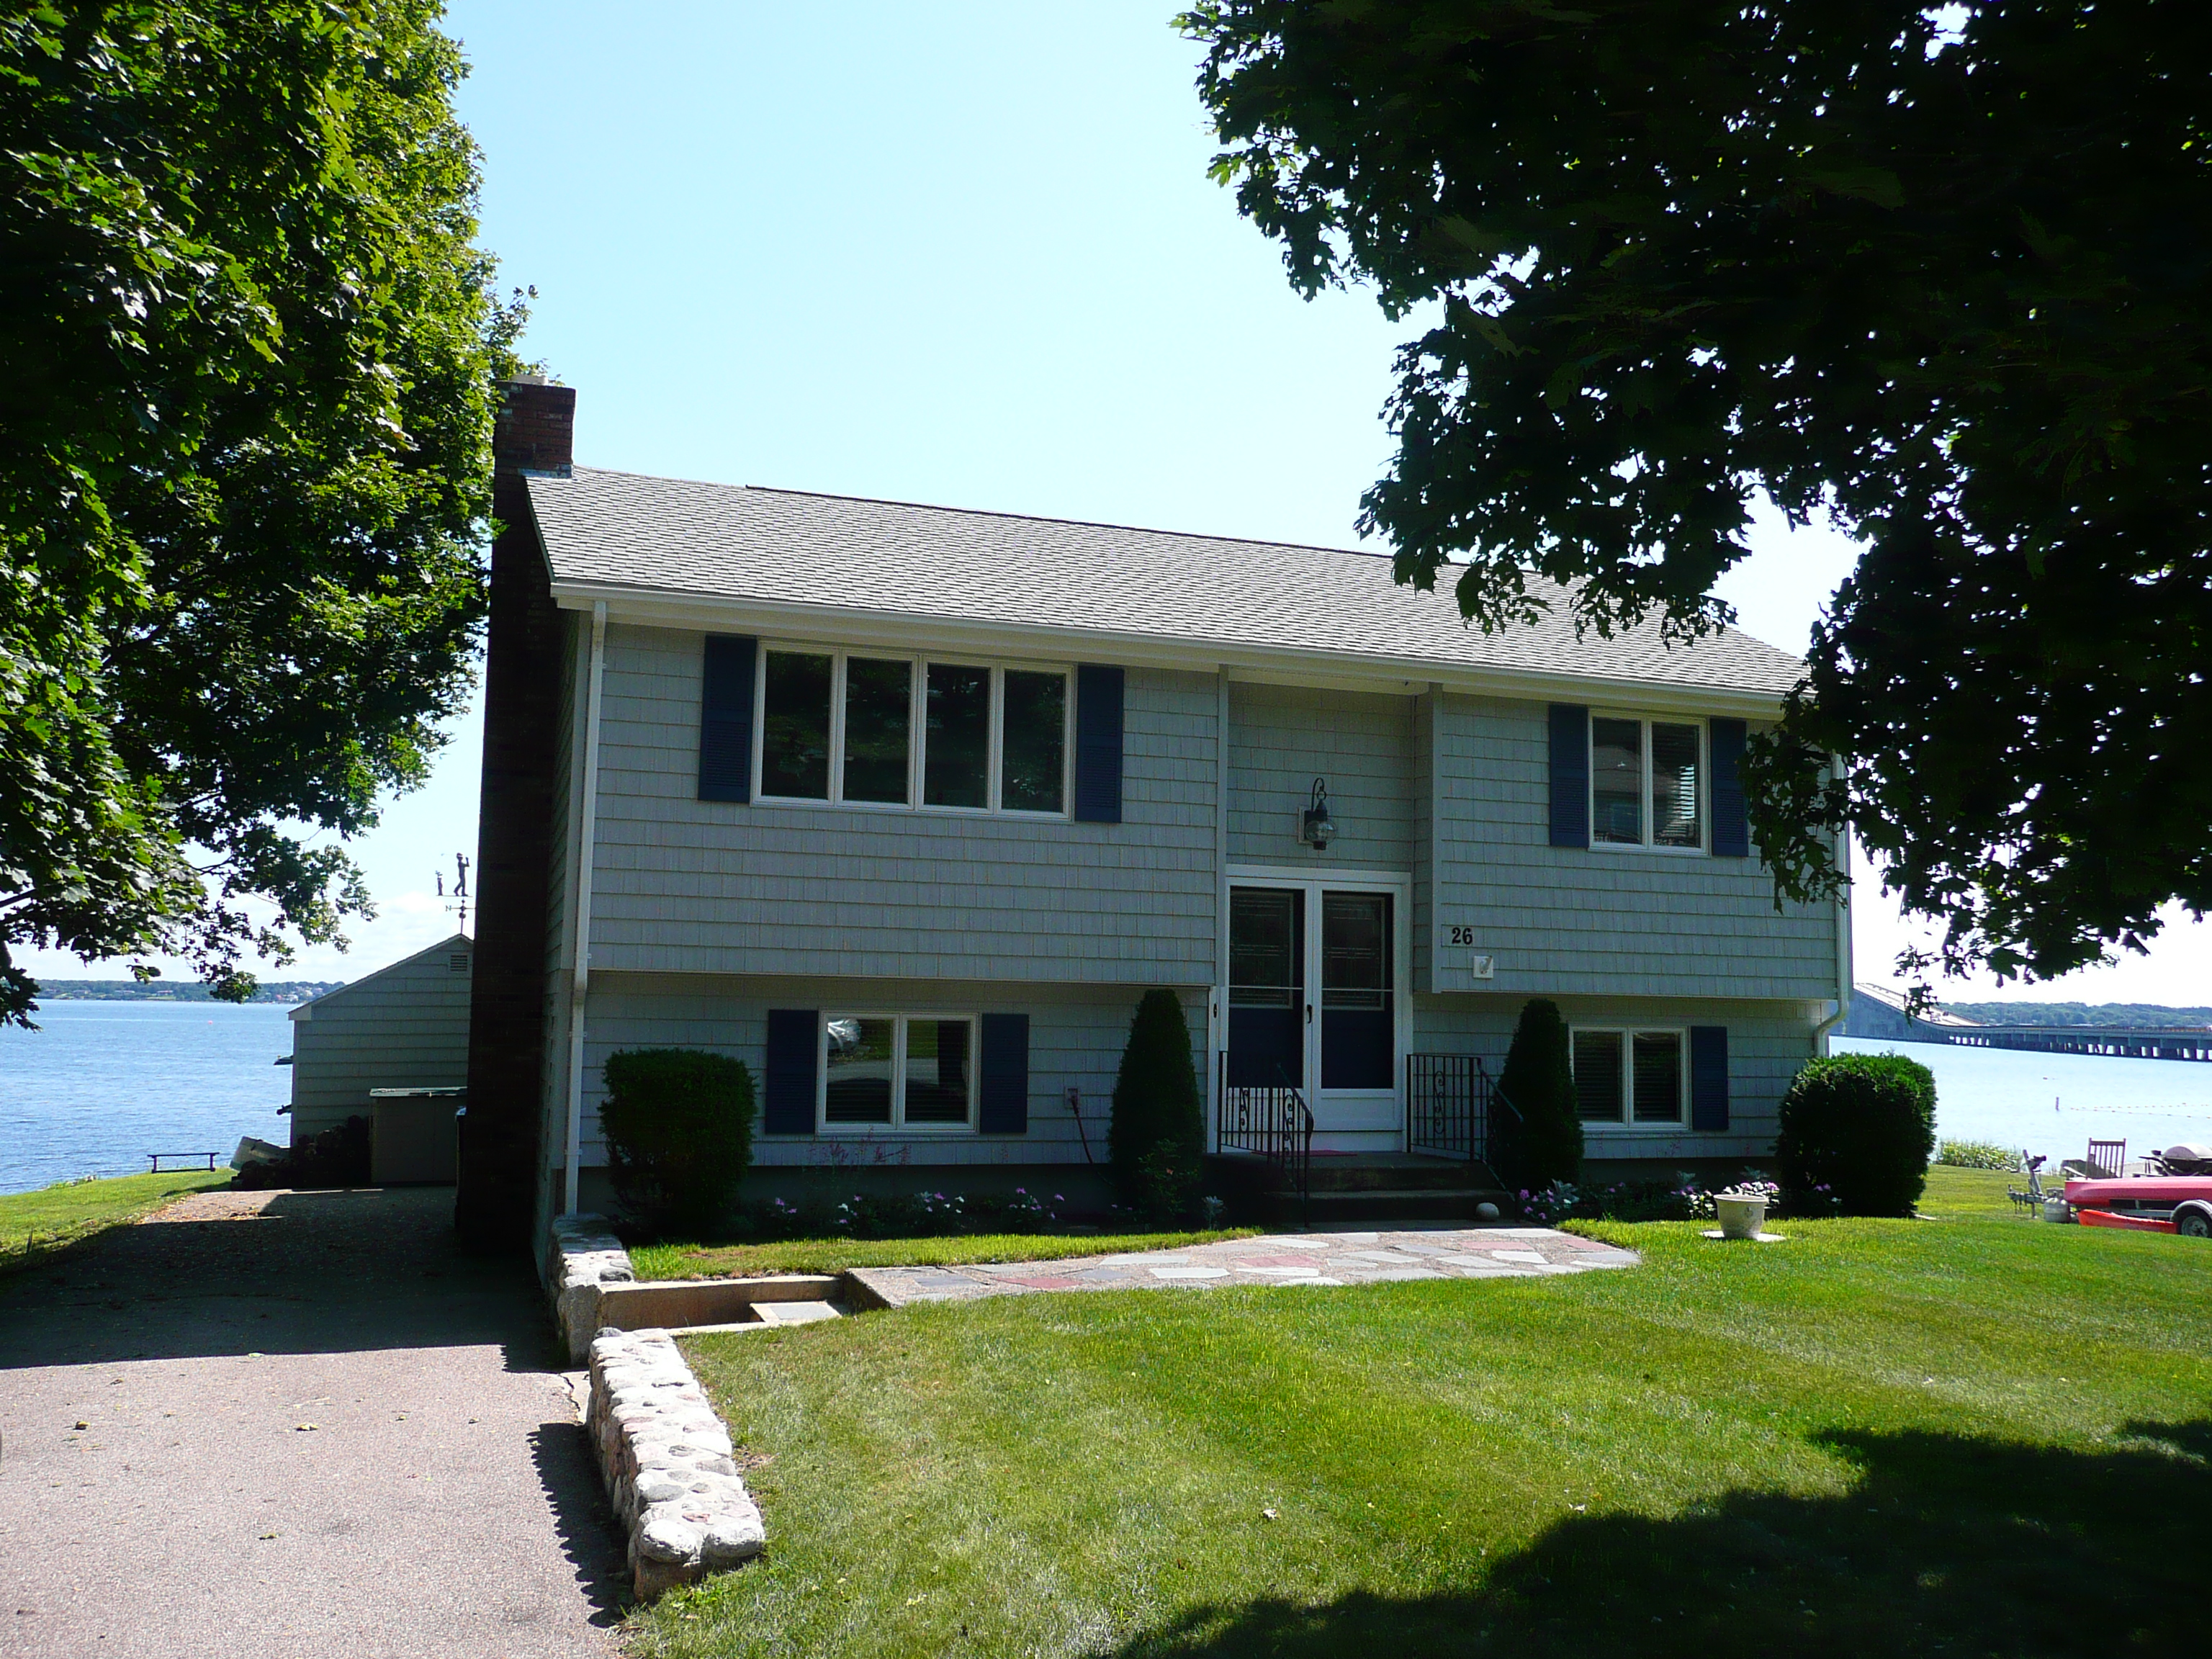 26 Riptide Dr. North Kingstown RI